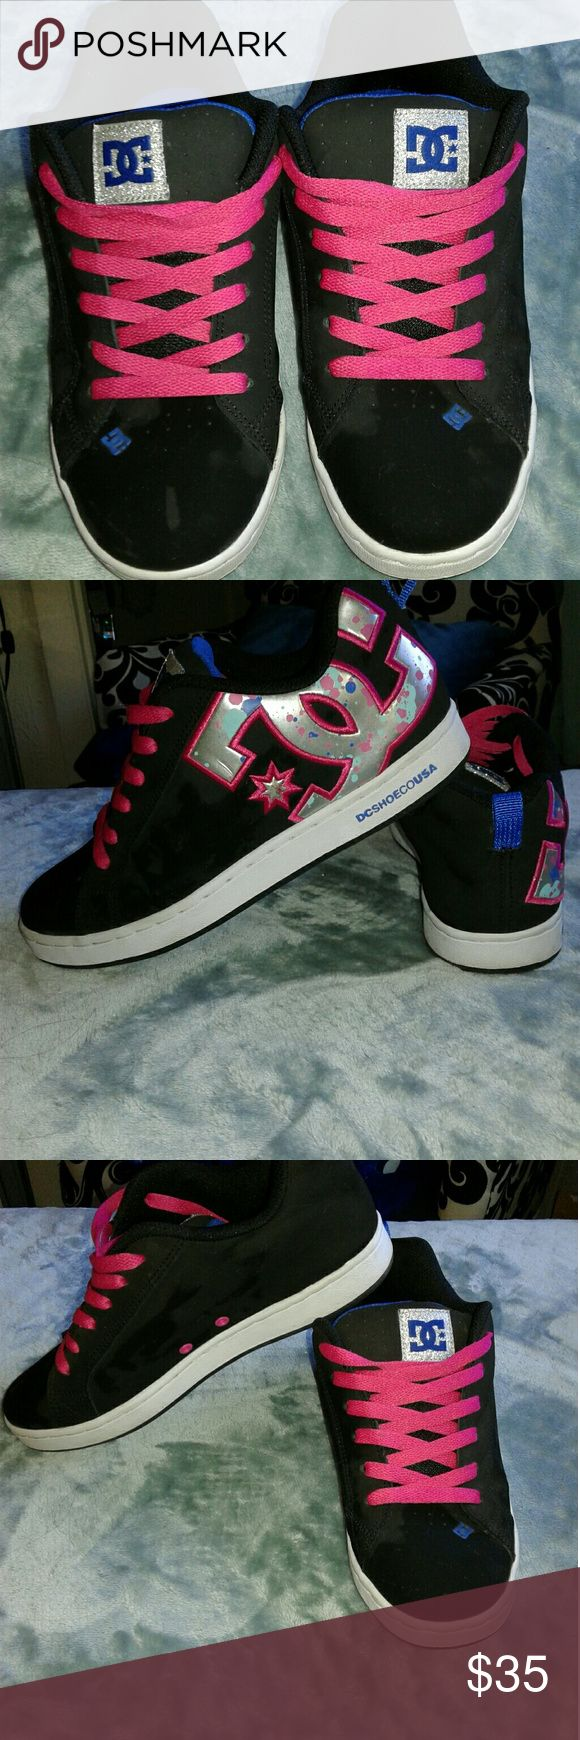 Women's DC Shoes black 7.5 Women's Pre owned,  GREAT condition!!! DC Shoes black with pink laces large pink/blue metallic DC logo on sides of shoes small DC logo on tongue US 7.5 Womens. Thanks for looking!!! DC Shoes Shoes Sneakers